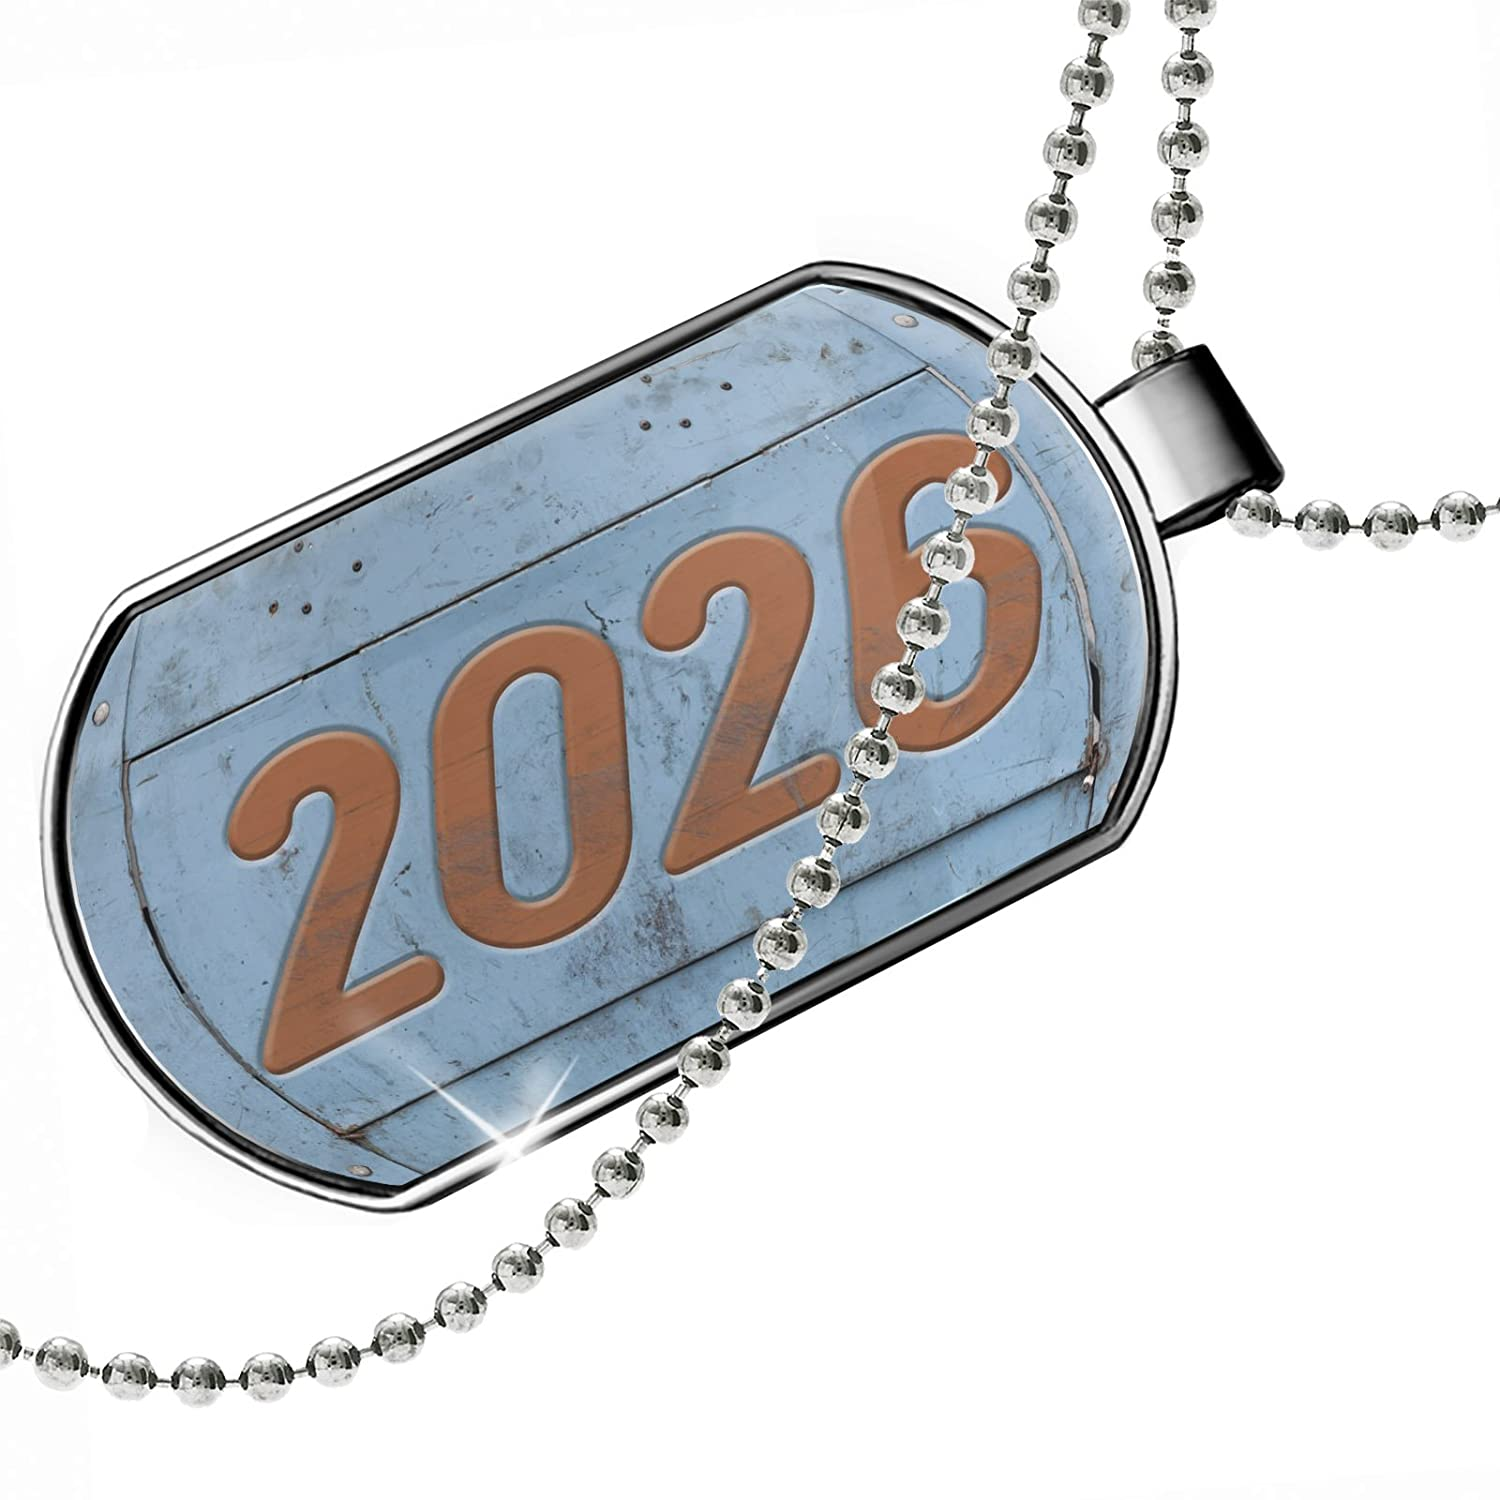 NEONBLOND Personalized Name Engraved Orange Vintage Looking Year 2026 Dogtag Necklace